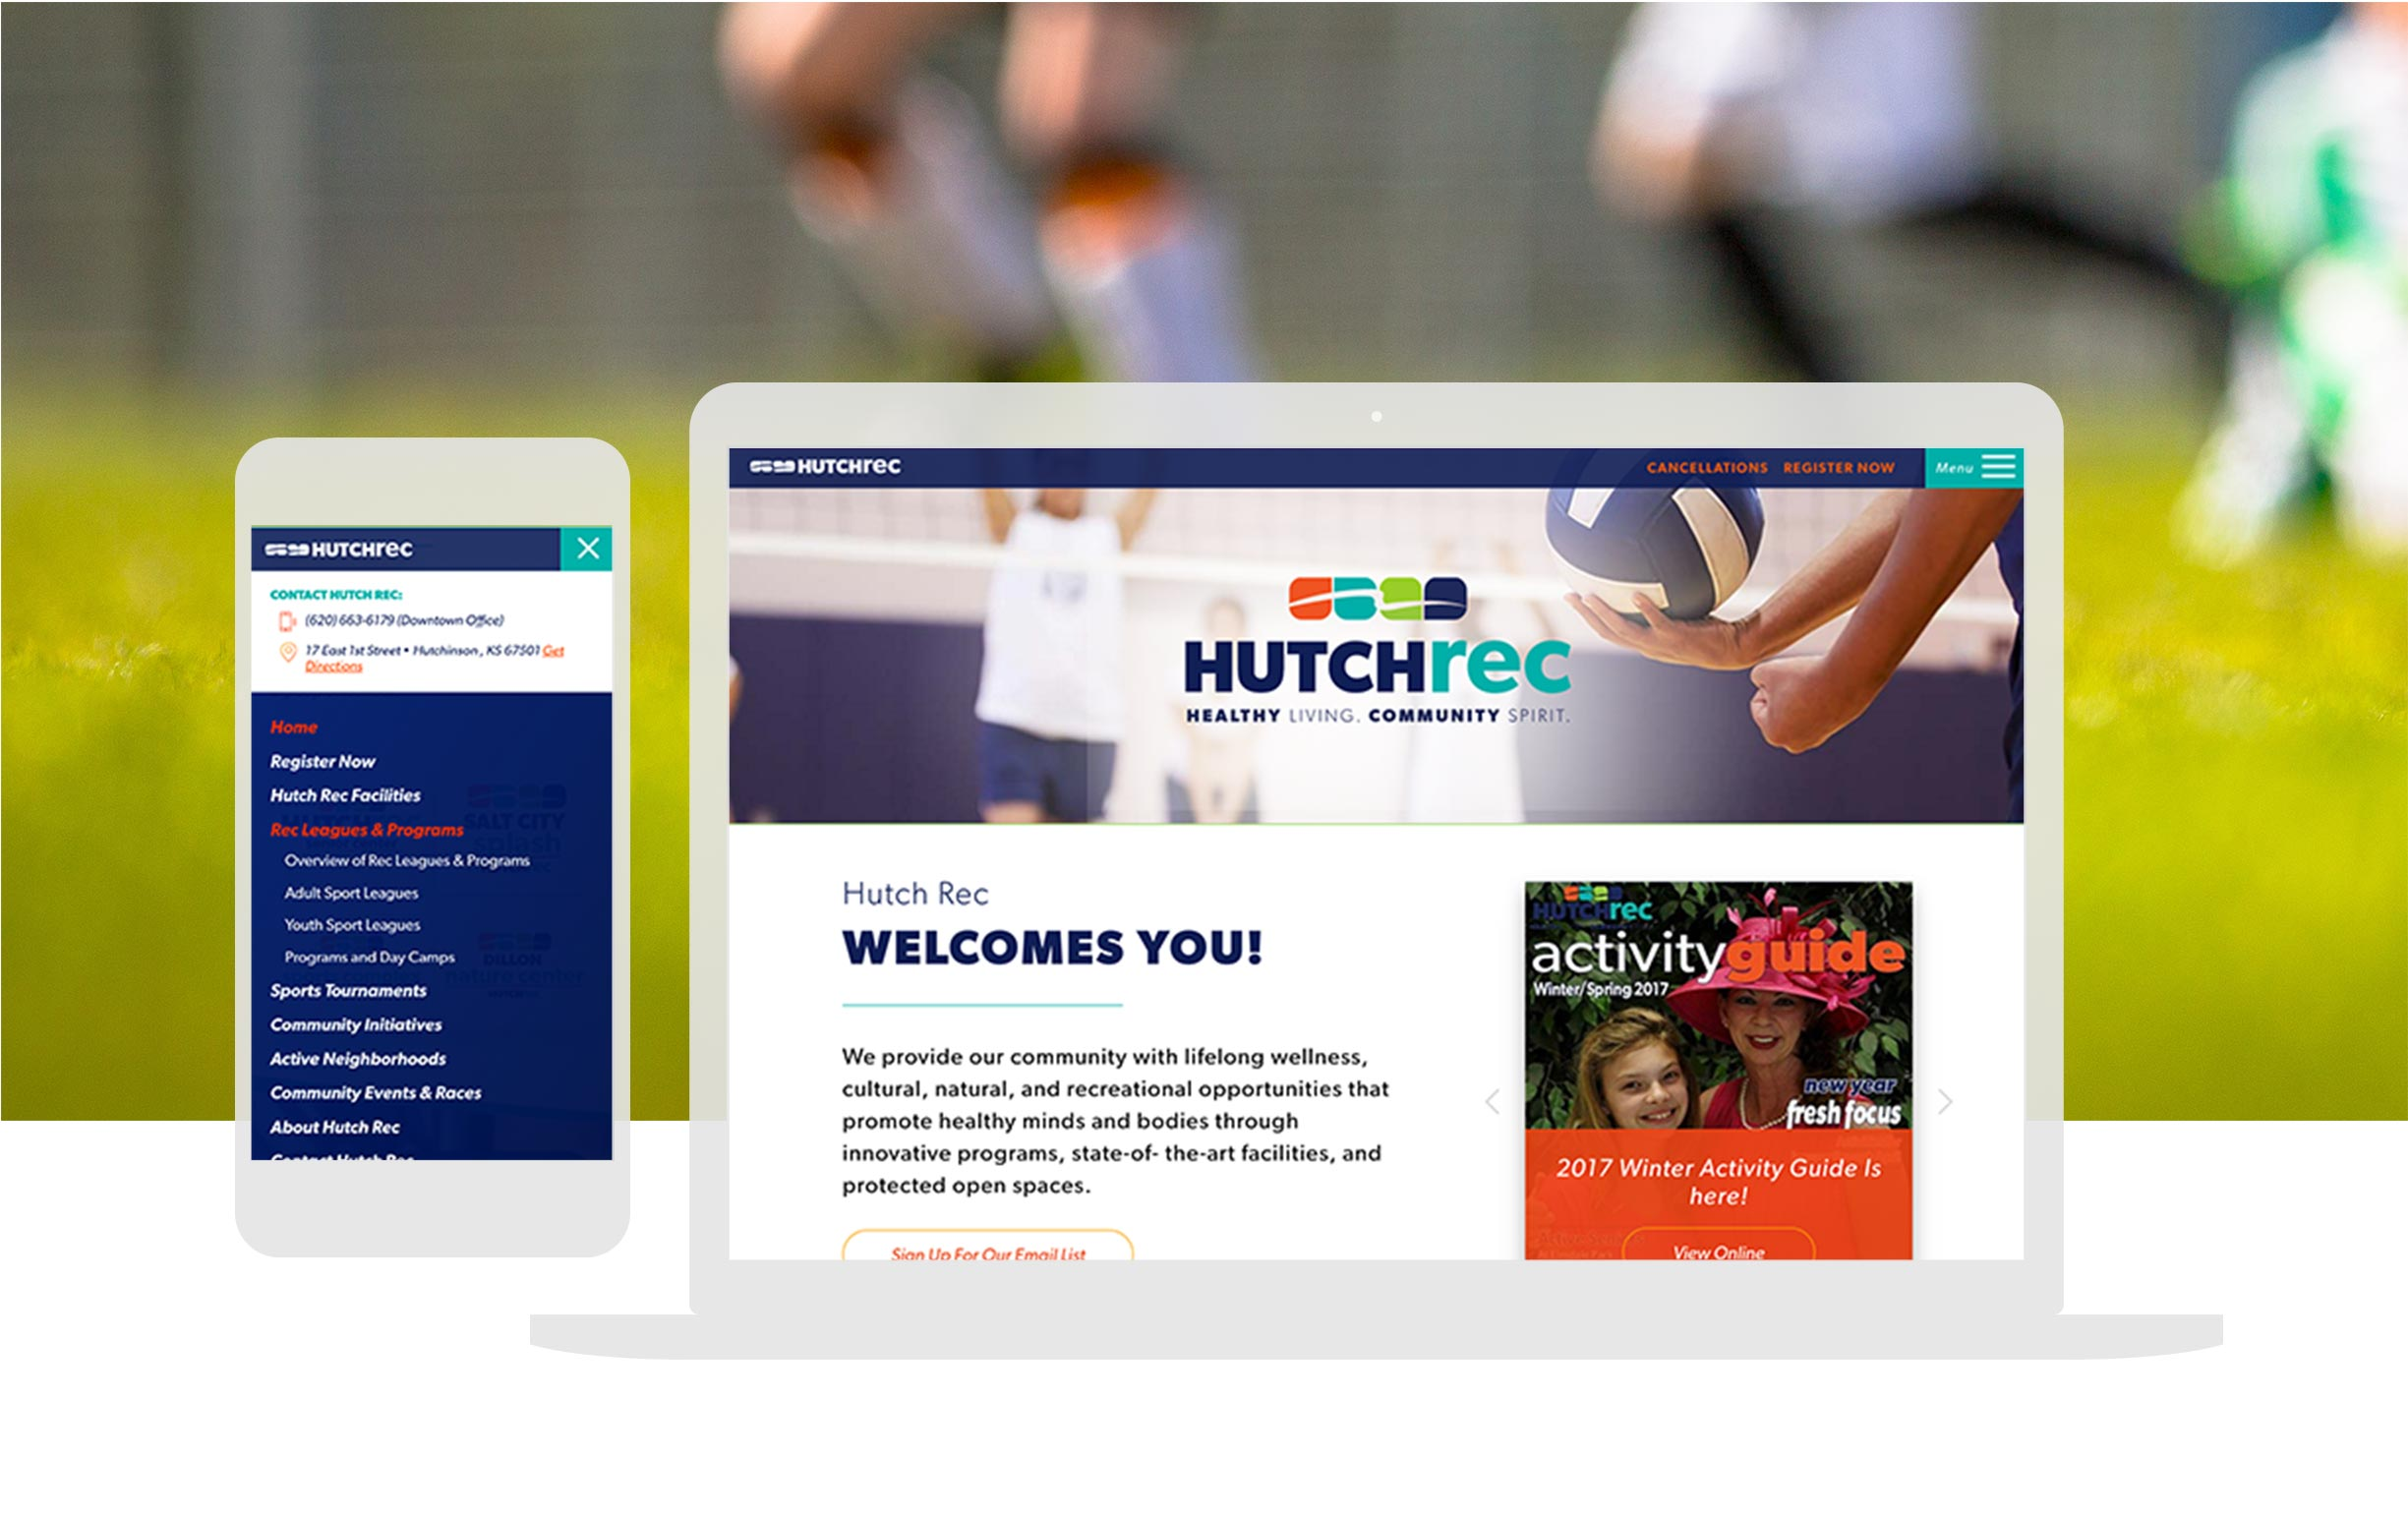 Hutch Rec Custom Website Design Cassandra Bryan Design